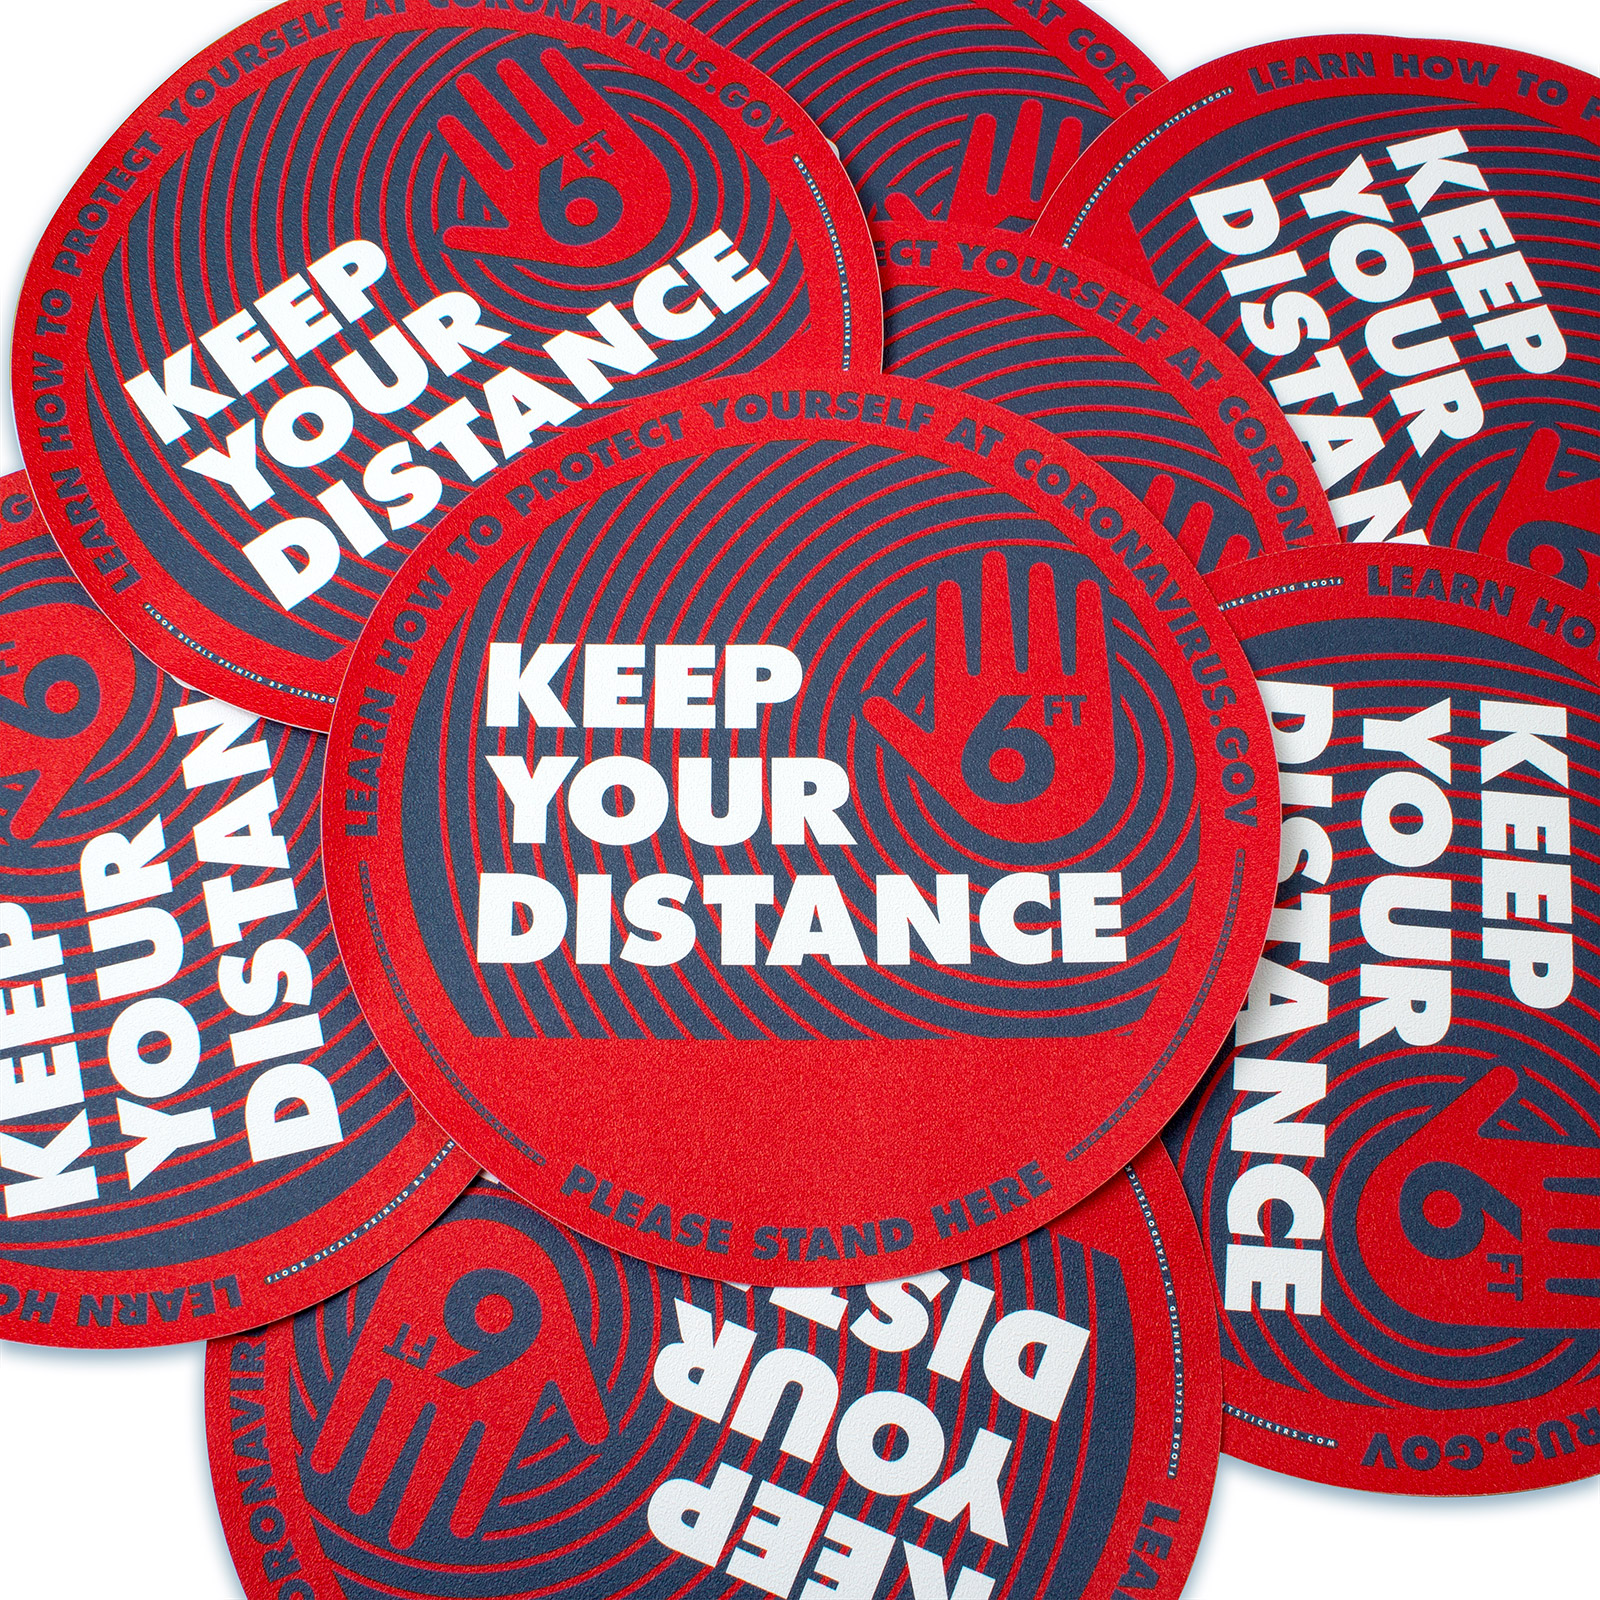 Keep Your Distance Floor Decal